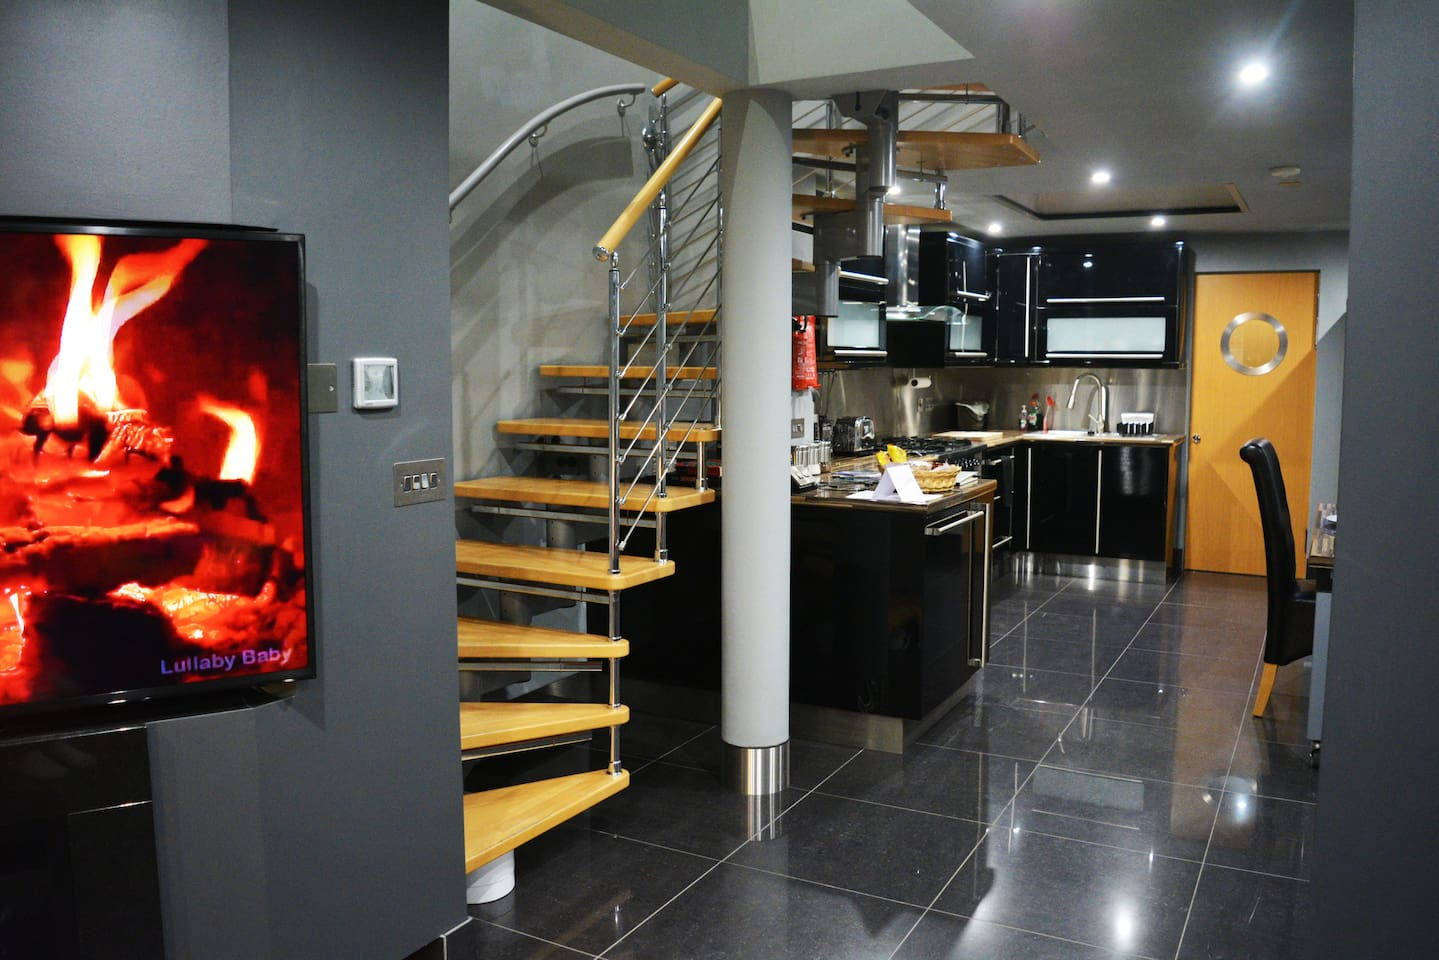 """An Open Plan Lounge With 60"""" Smart TV and Polished Porcelain Flooring Leading to a Spacious Black Gloss and Chrome Kitchen Area. *Highlight* Beech Tread, Chrome Rail Staircase Immersed In Urban Grey Decor"""